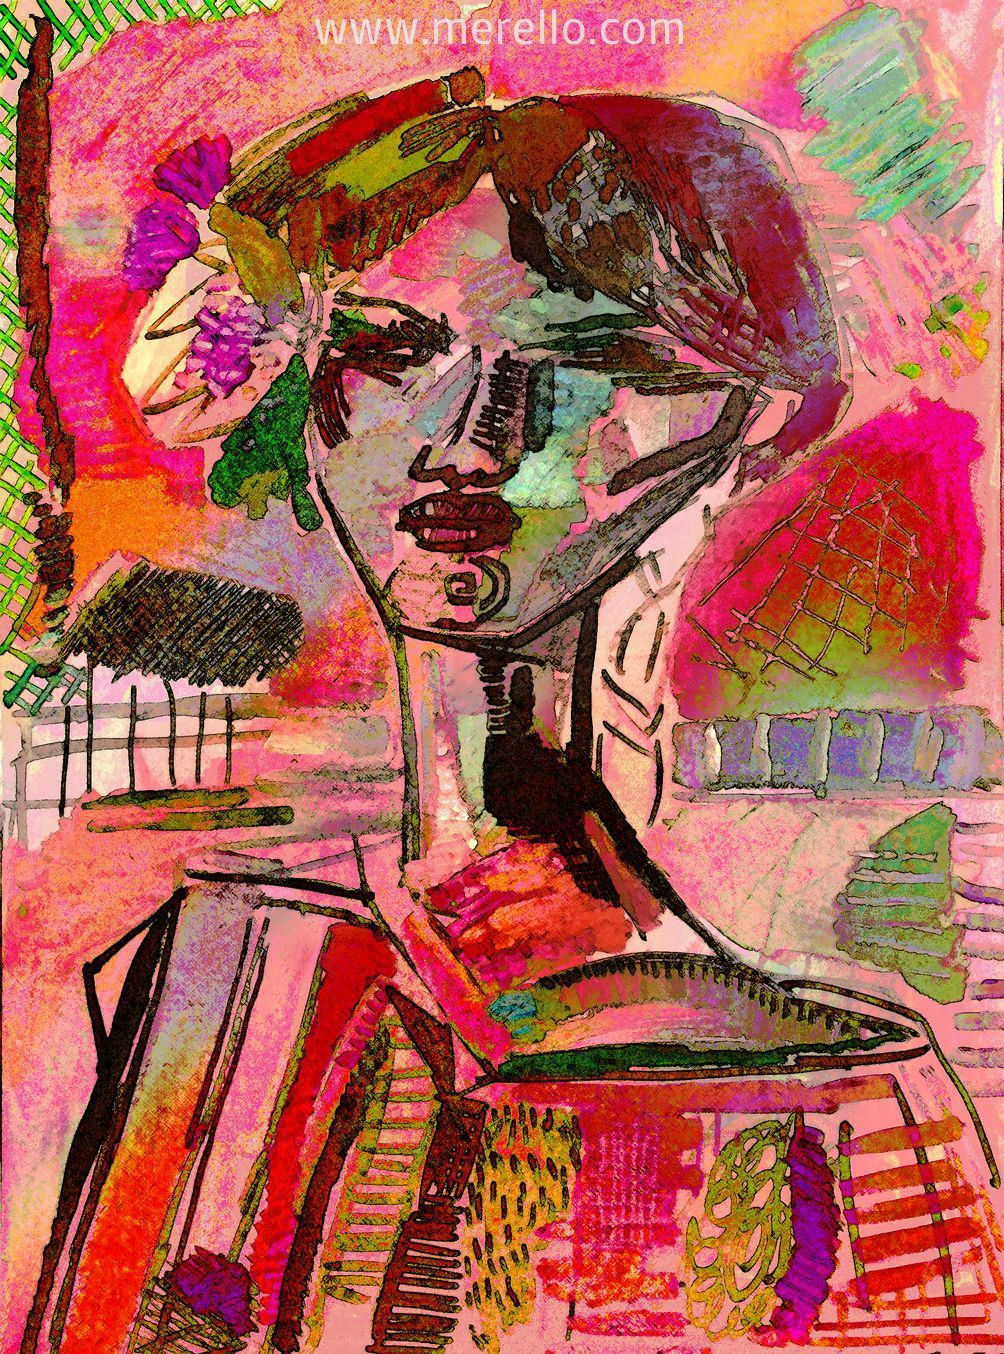 """A NEW UNIVERSE OF COLORS. Jose Manuel Merello. """"Muchacha"""